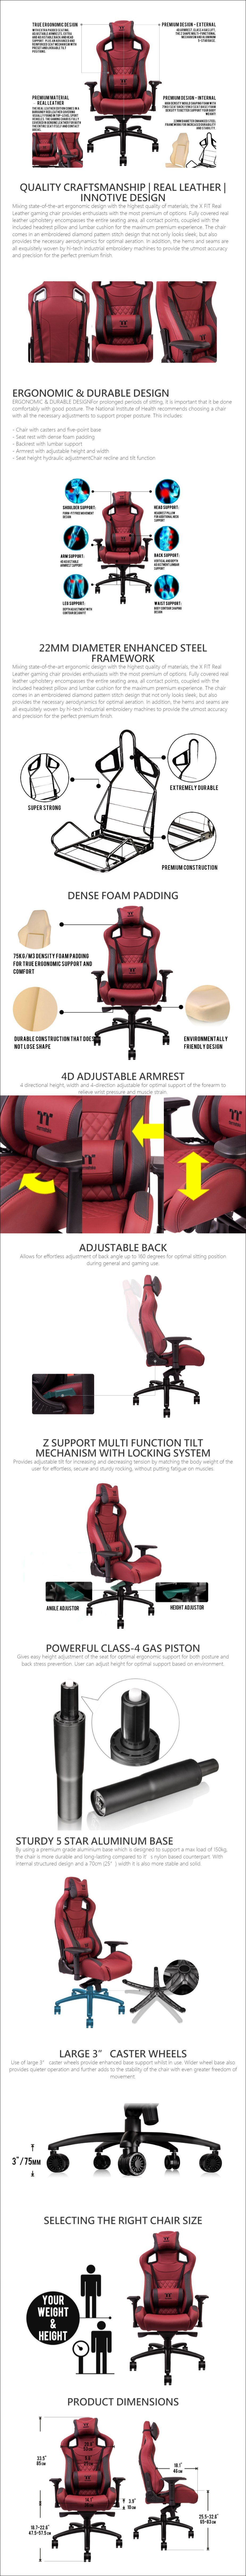 Tt eSPORTS TT Premium X Fit Series Real Leather Gaming Chair - Burgundy Red - Overview 1